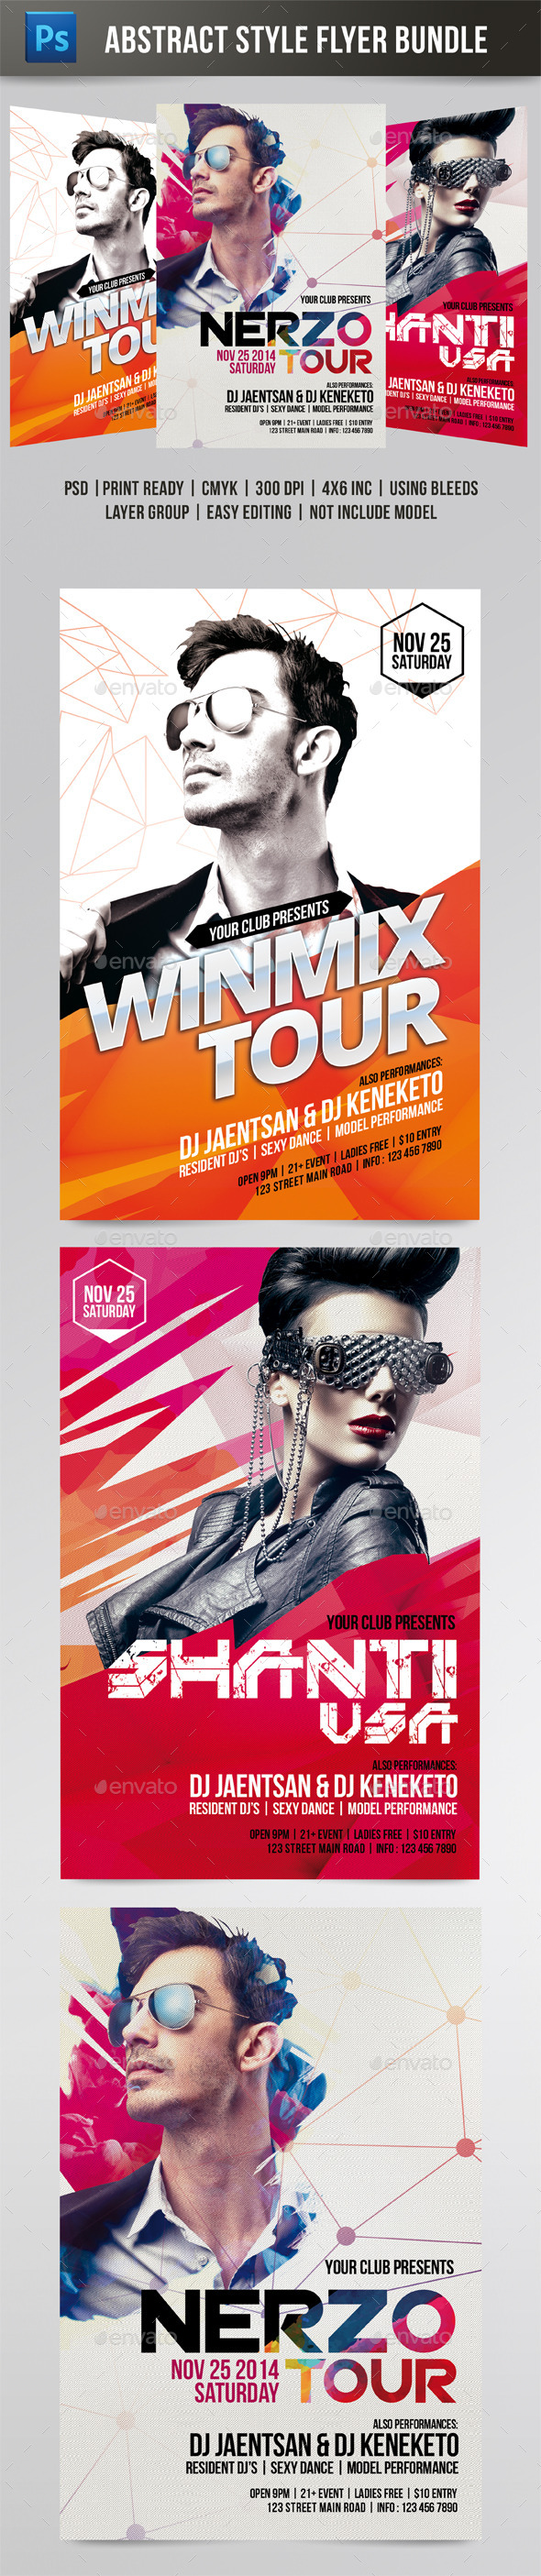 Abstract Style Flyer Bundle - Events Flyers